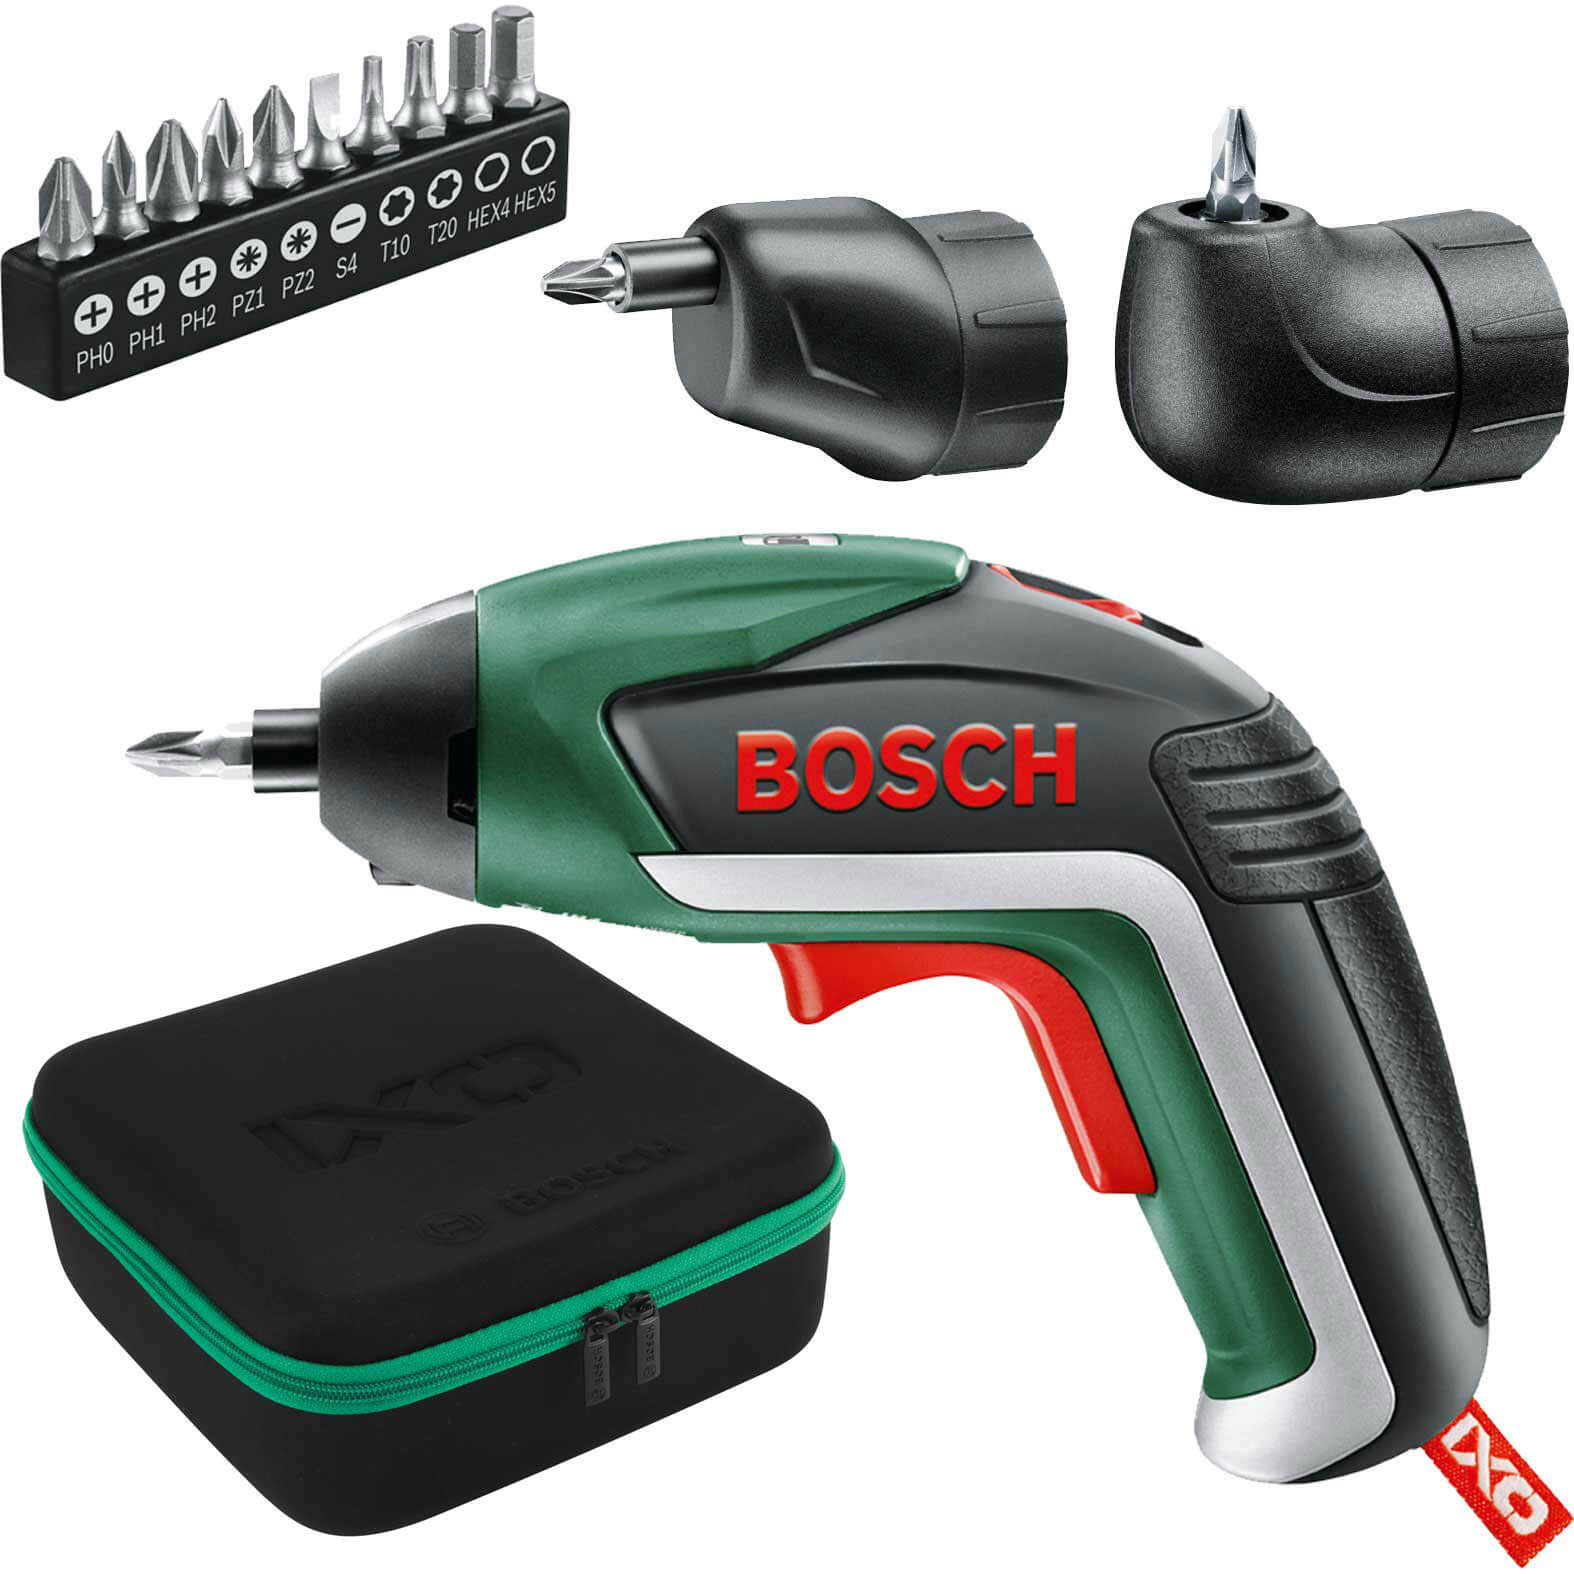 Bosch IXO V 3.6v Cordless Screwdrive & Ofset Angle Adaptor 1 x 1.5ah Integrated Liion Charger Case